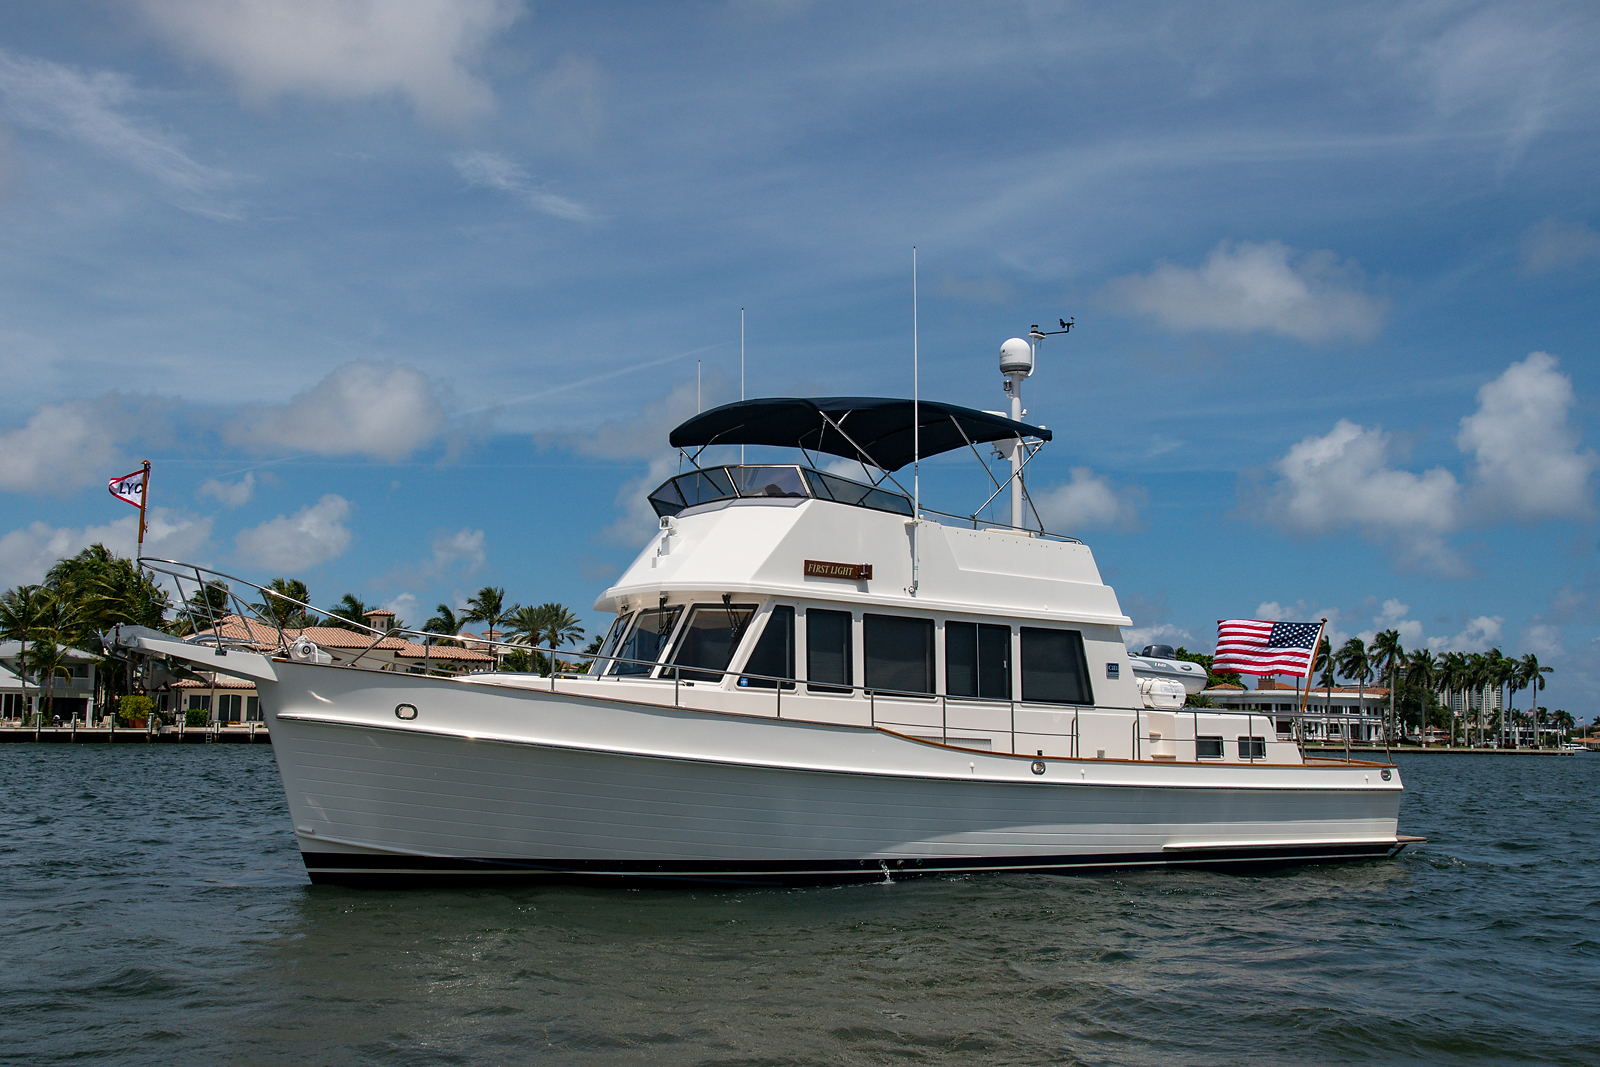 2007 model Grand Banks 47 Classic, FIRST LIGHT